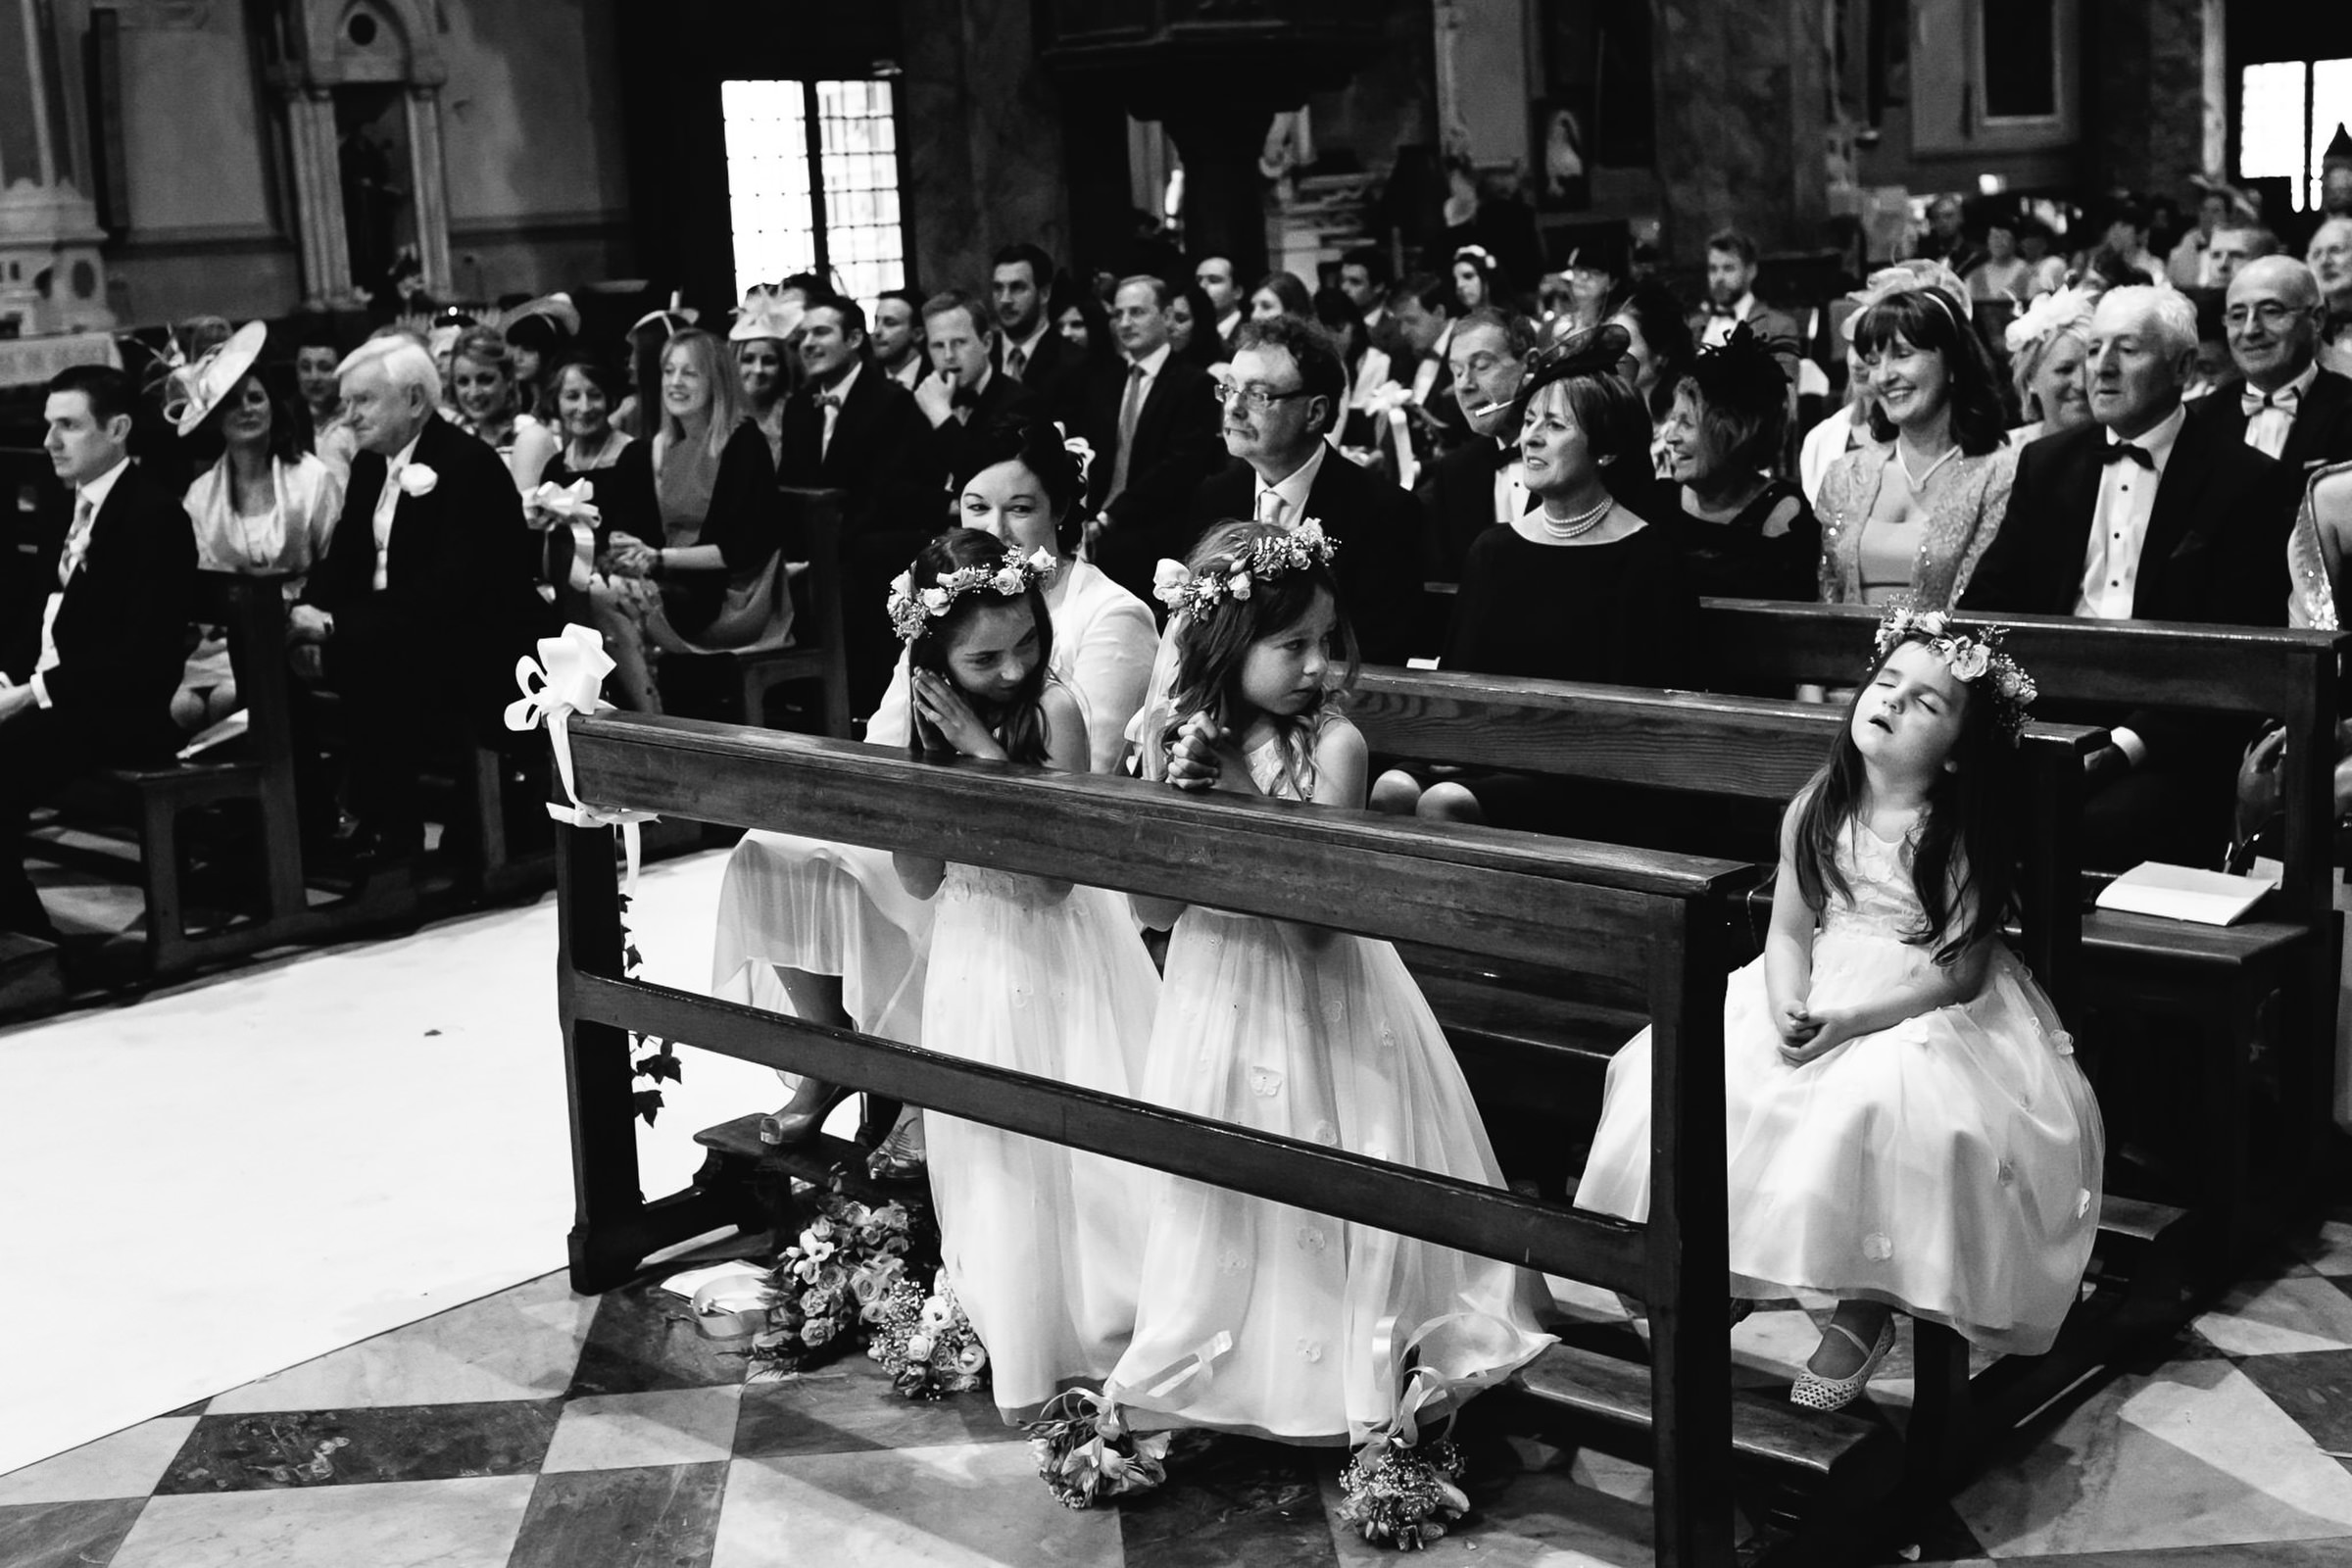 Flower girls and guests at church ceremony - photo by Julian Kanz Photography